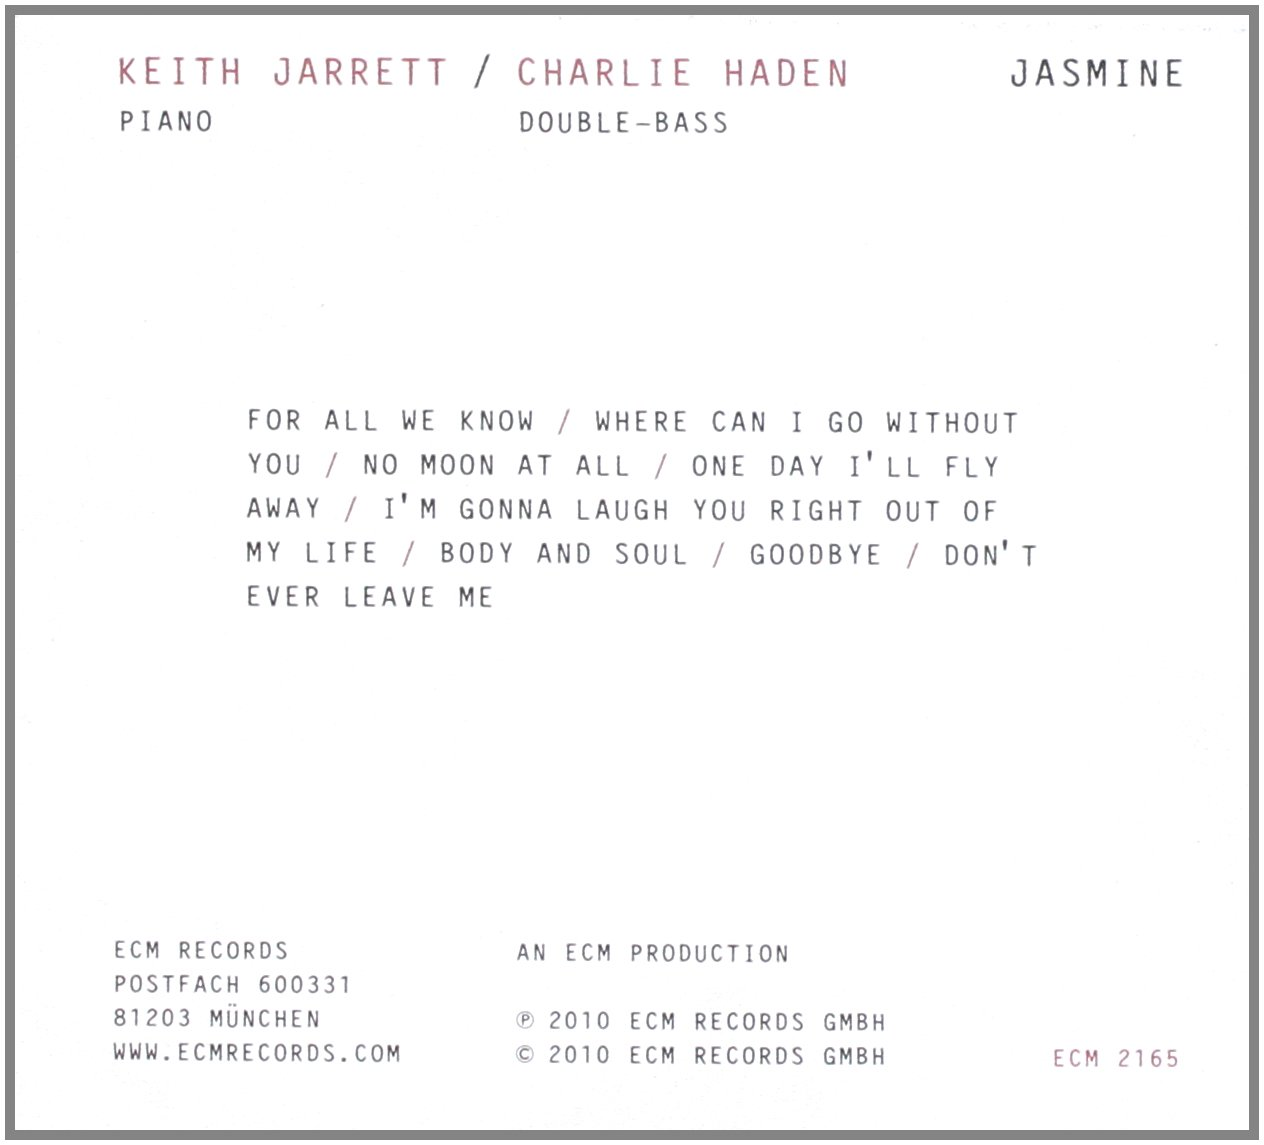 Keith jarrett charlie haden jasmine amazon music hexwebz Images